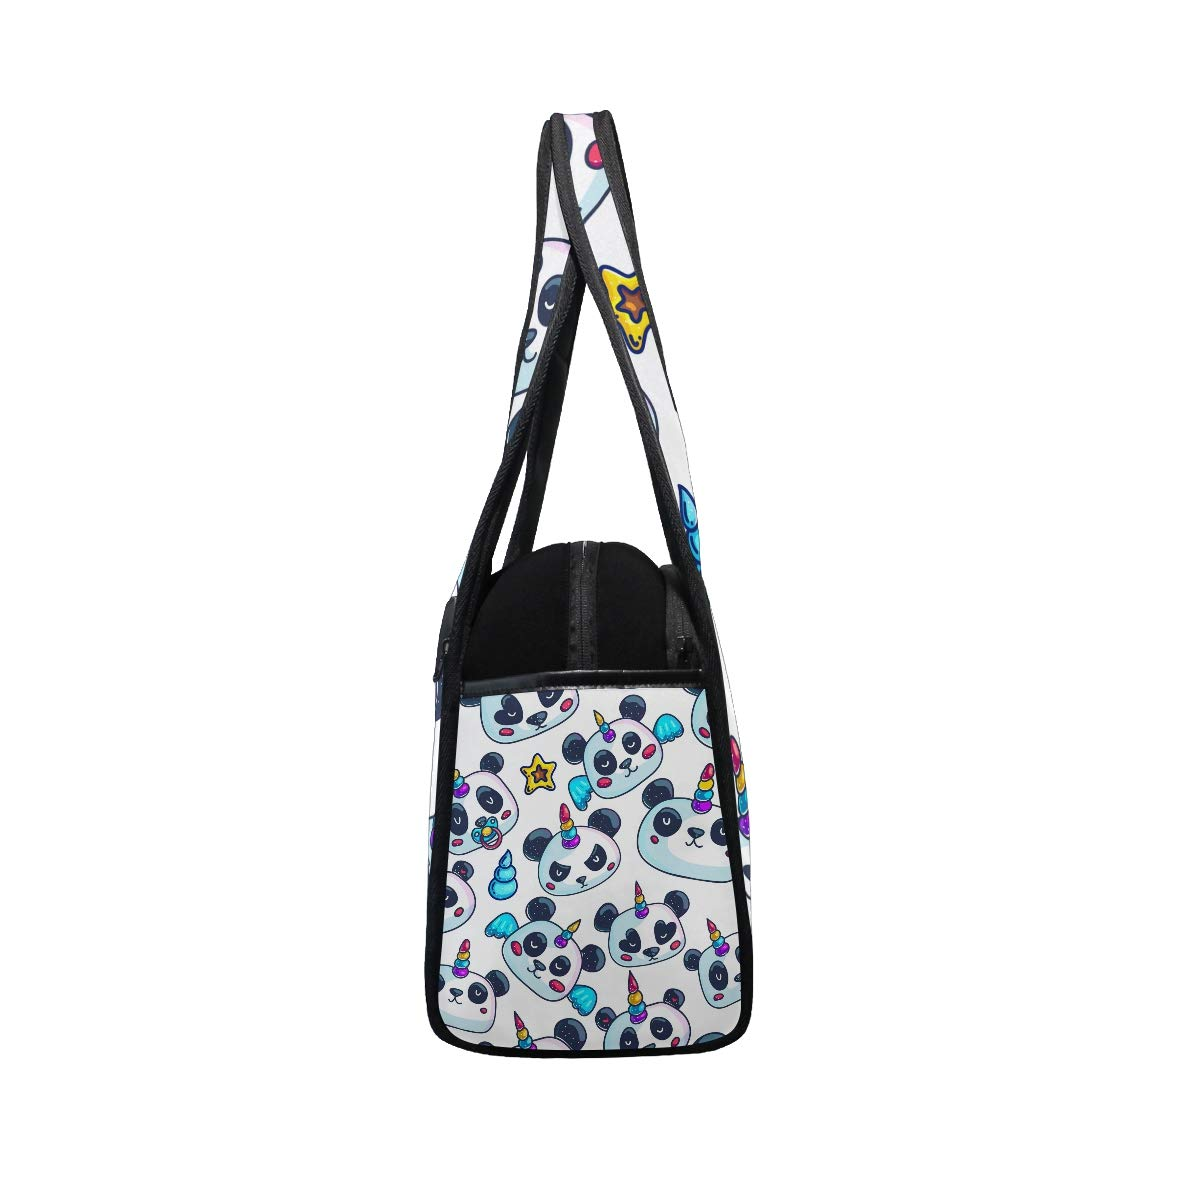 Gym Bag Sports Holdall Unicorn Panda With Rainbow Canvas Shoulder Bag Overnight Travel Bag for Men and Women